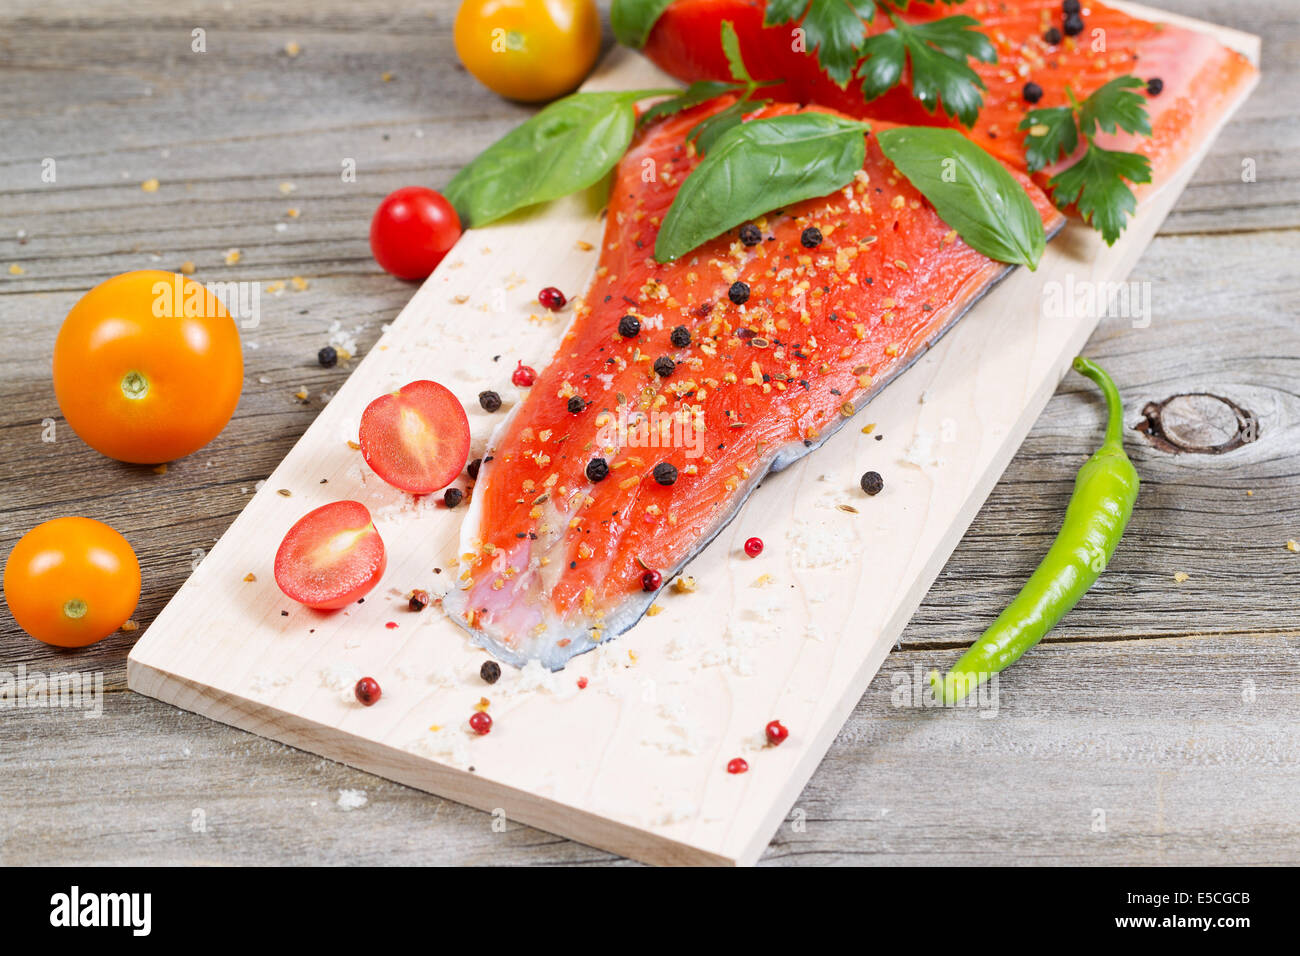 Closeup horizontal front view of raw red salmon, skin side down, on maple wood grilling plank with seasoning and - Stock Image